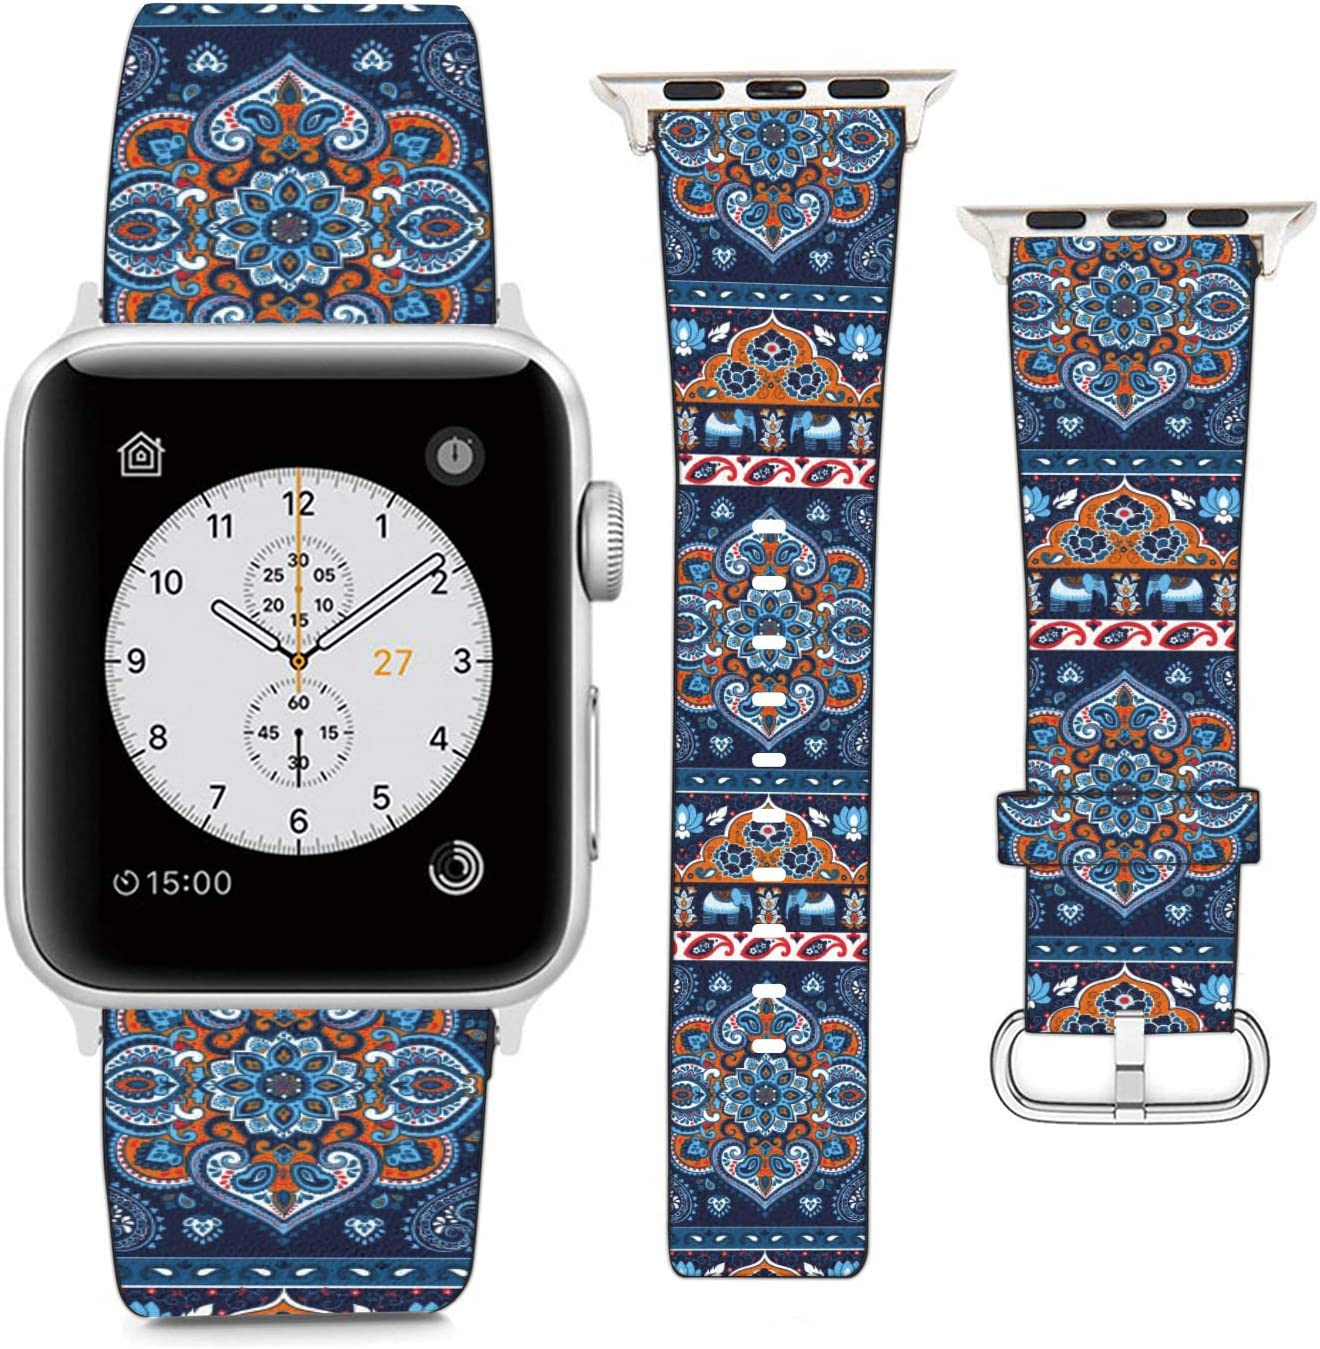 Compatible with Apple Watch Wristband 38mm 40mm, (Indian Rug Paisley Ornament Ethnic Mandala? Pattern) PU Leather Band Replacement Strap for iWatch Series 5 4 3 2 1